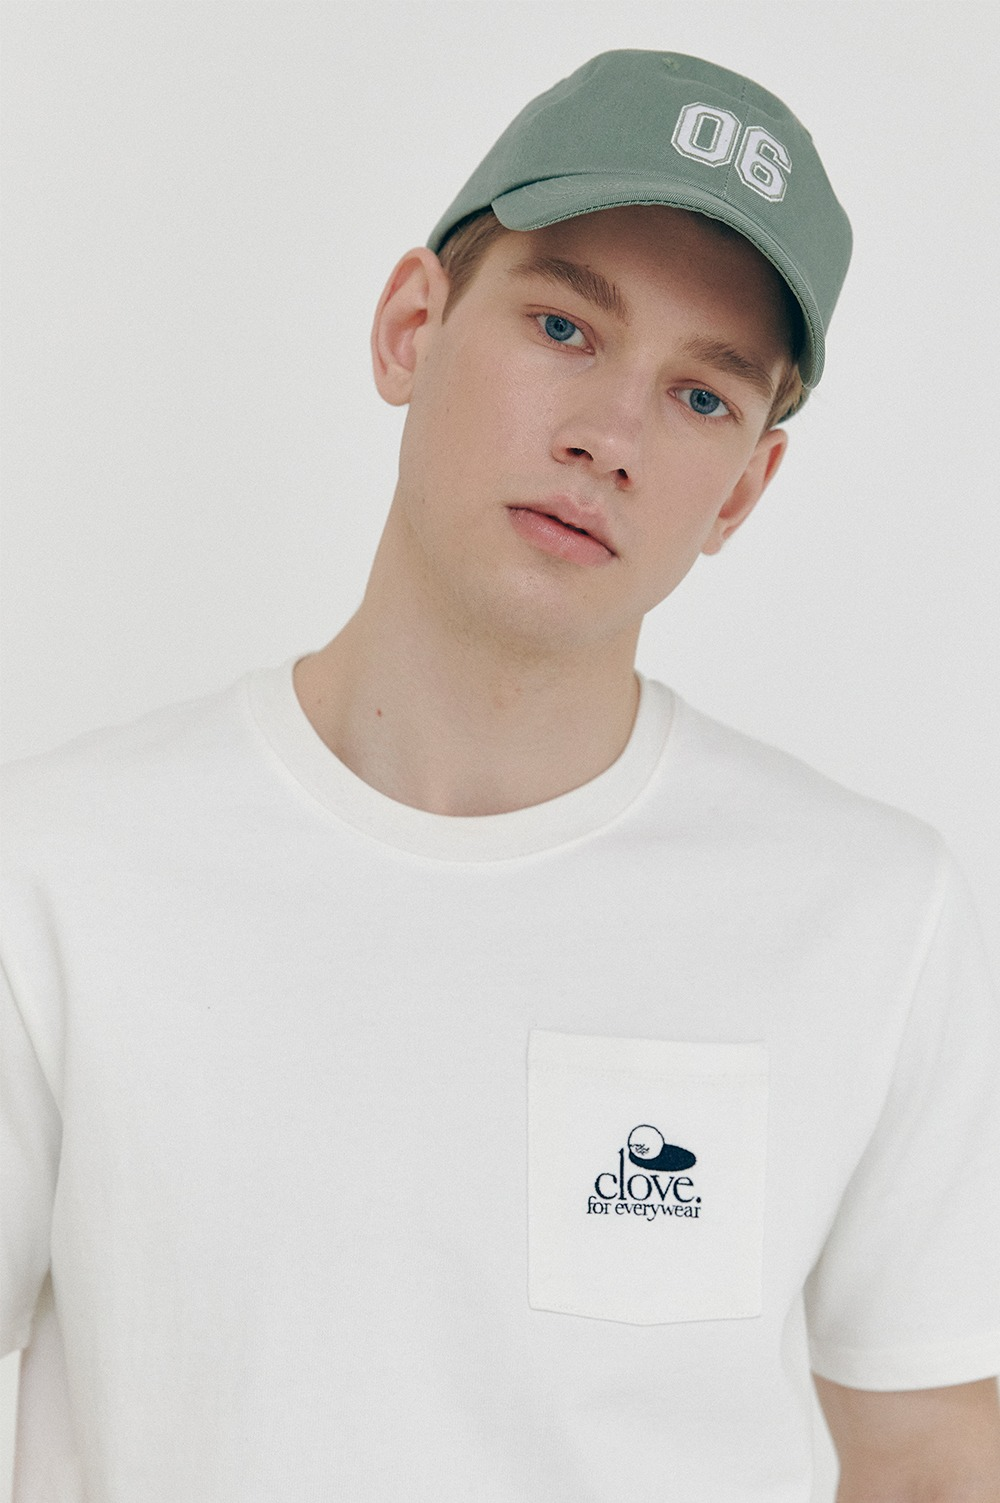 clove - [SS21 clove] Club Pocket T-shirt White